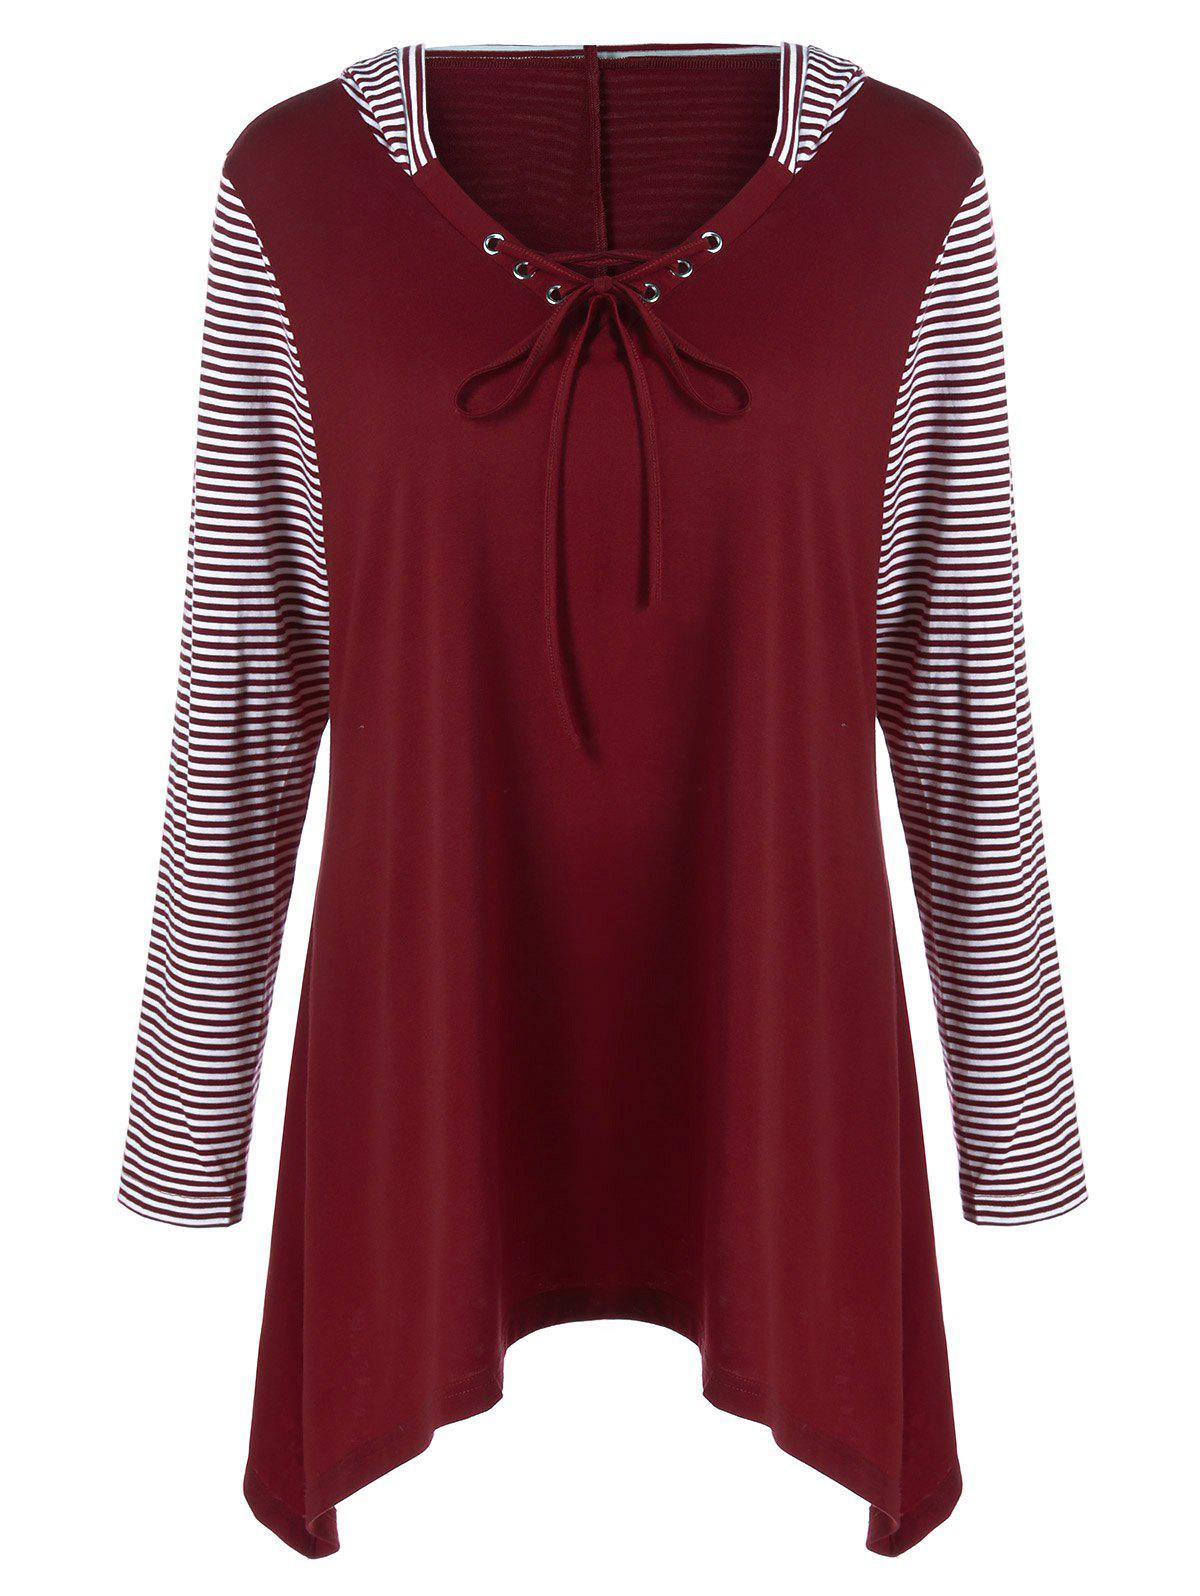 Plus Size Asymmetrical Striped Hooded T-ShirtWOMEN<br><br>Size: 2XL; Color: BURGUNDY; Material: Polyester,Spandex; Shirt Length: Long; Sleeve Length: Full; Collar: Hooded; Style: Casual; Season: Fall,Spring; Pattern Type: Striped; Weight: 0.390kg; Package Contents: 1 x T-Shirt;